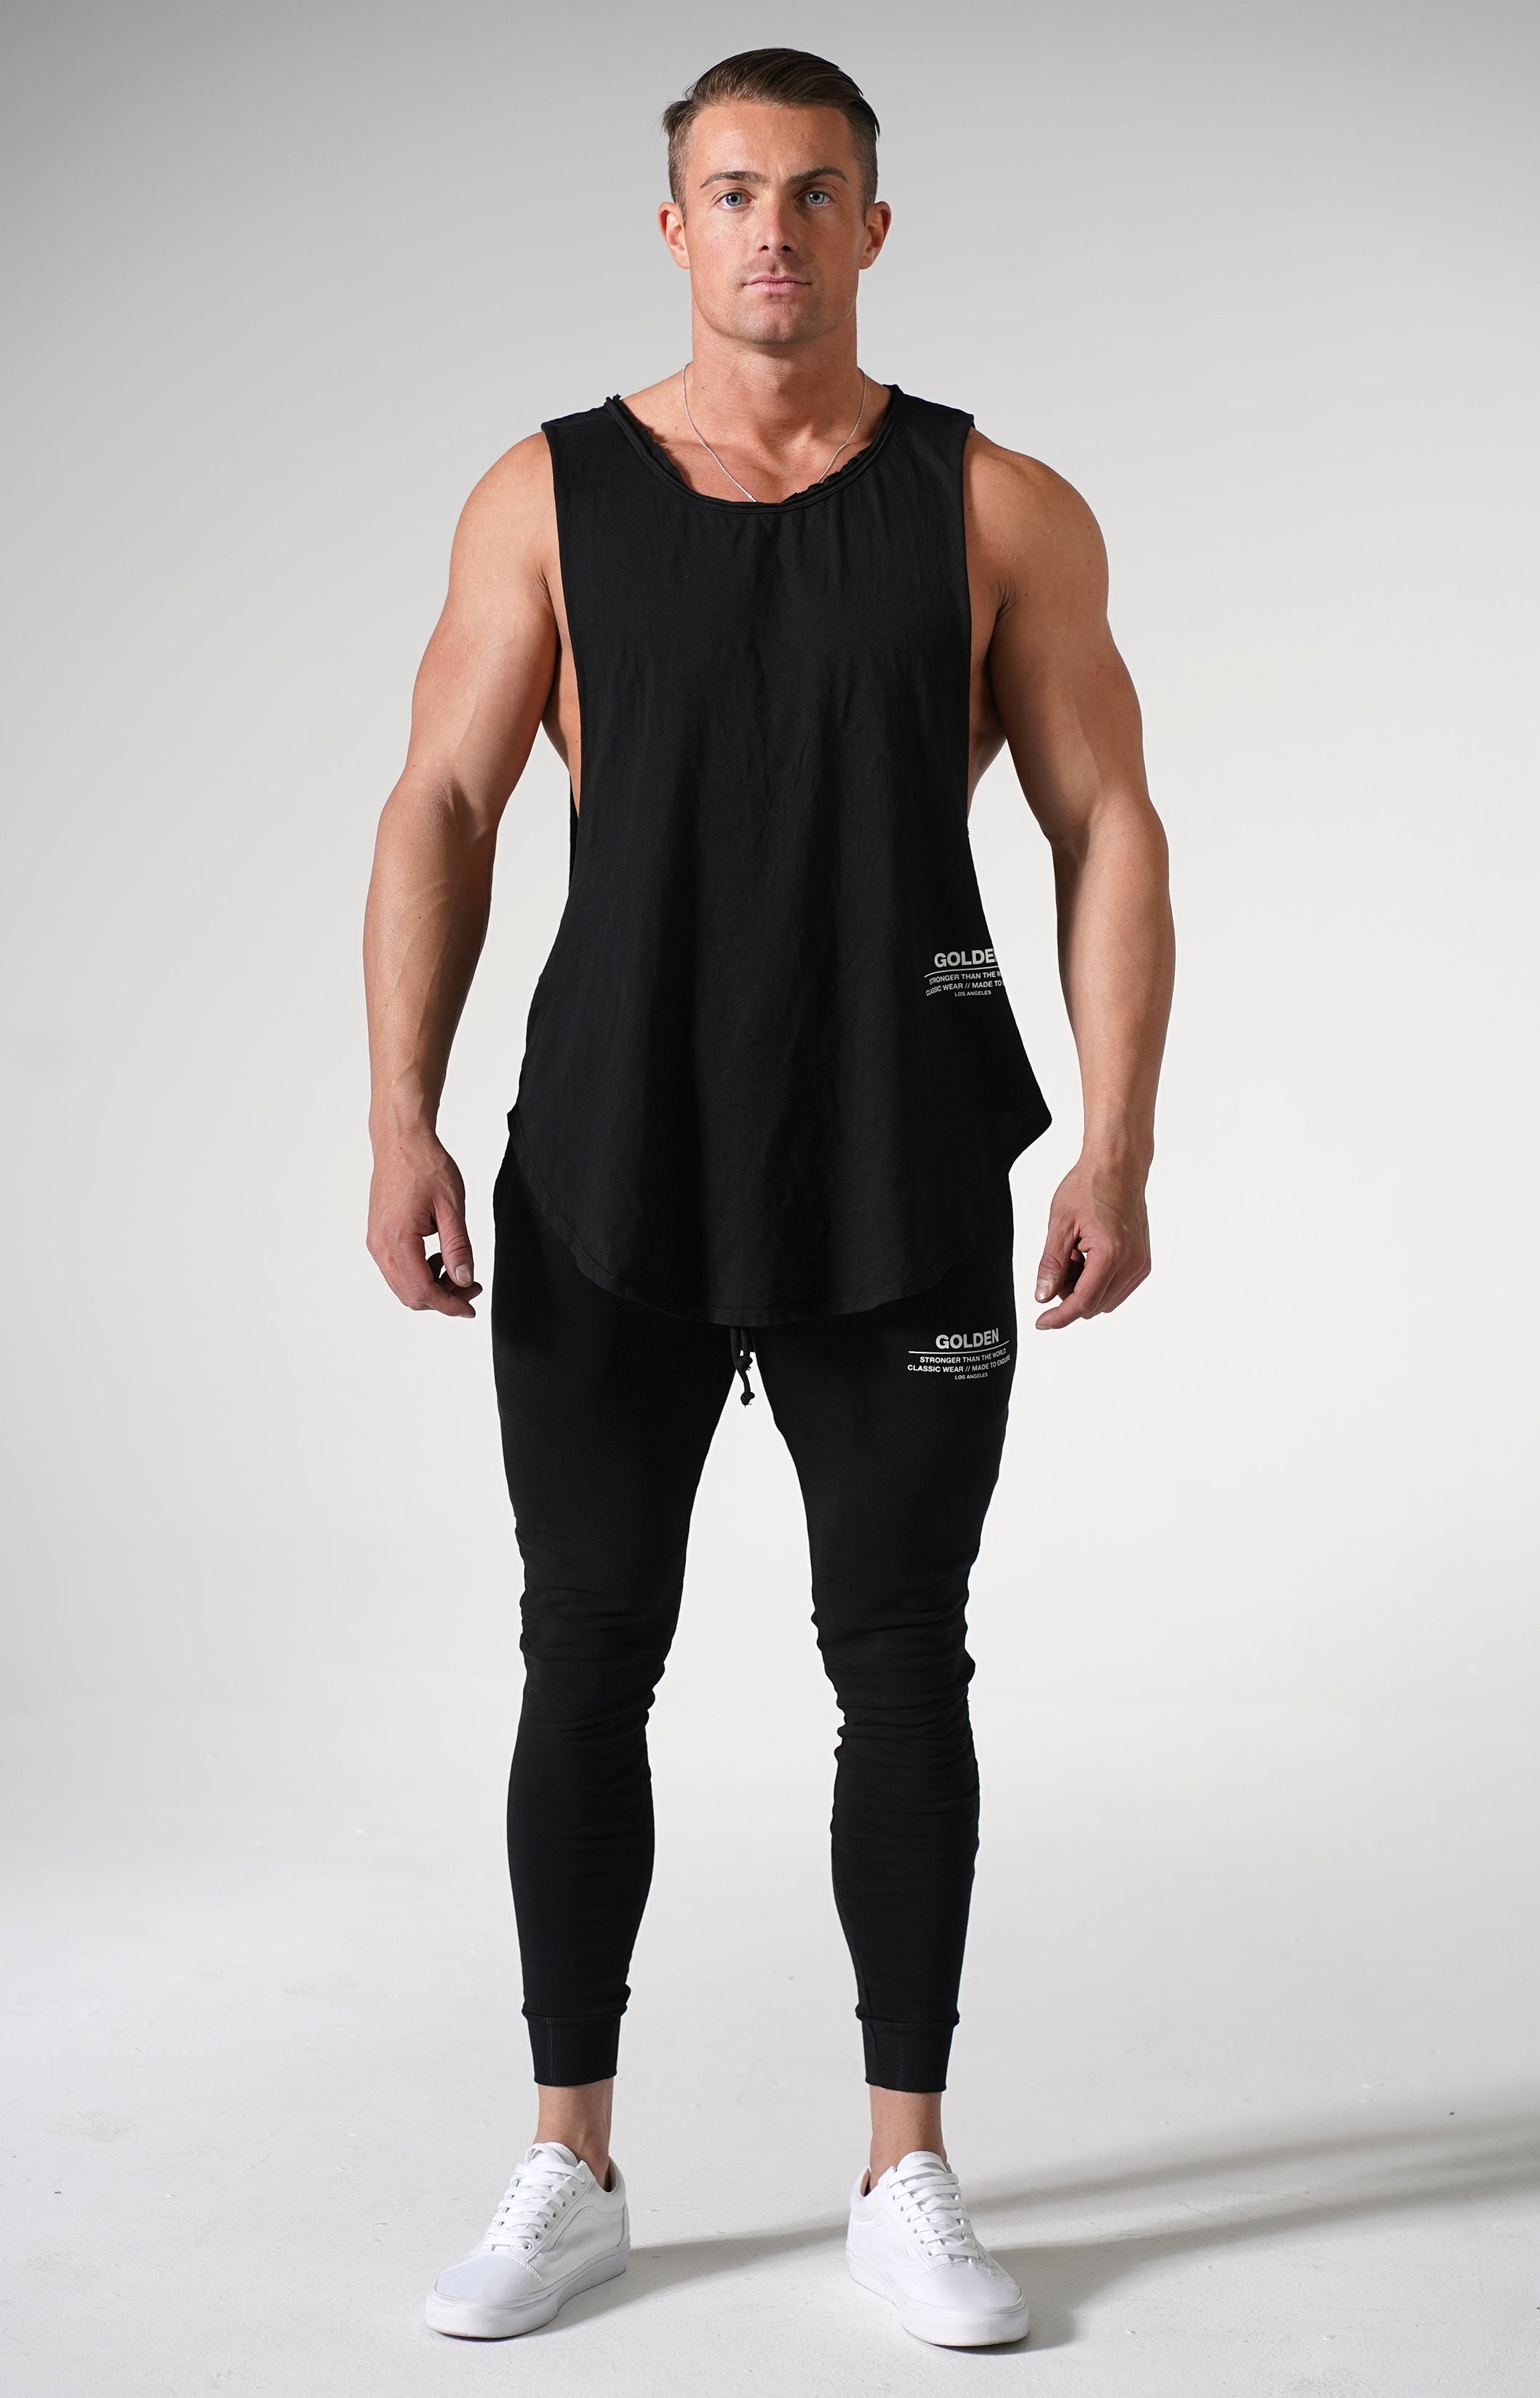 Black Golden Muscle Tank